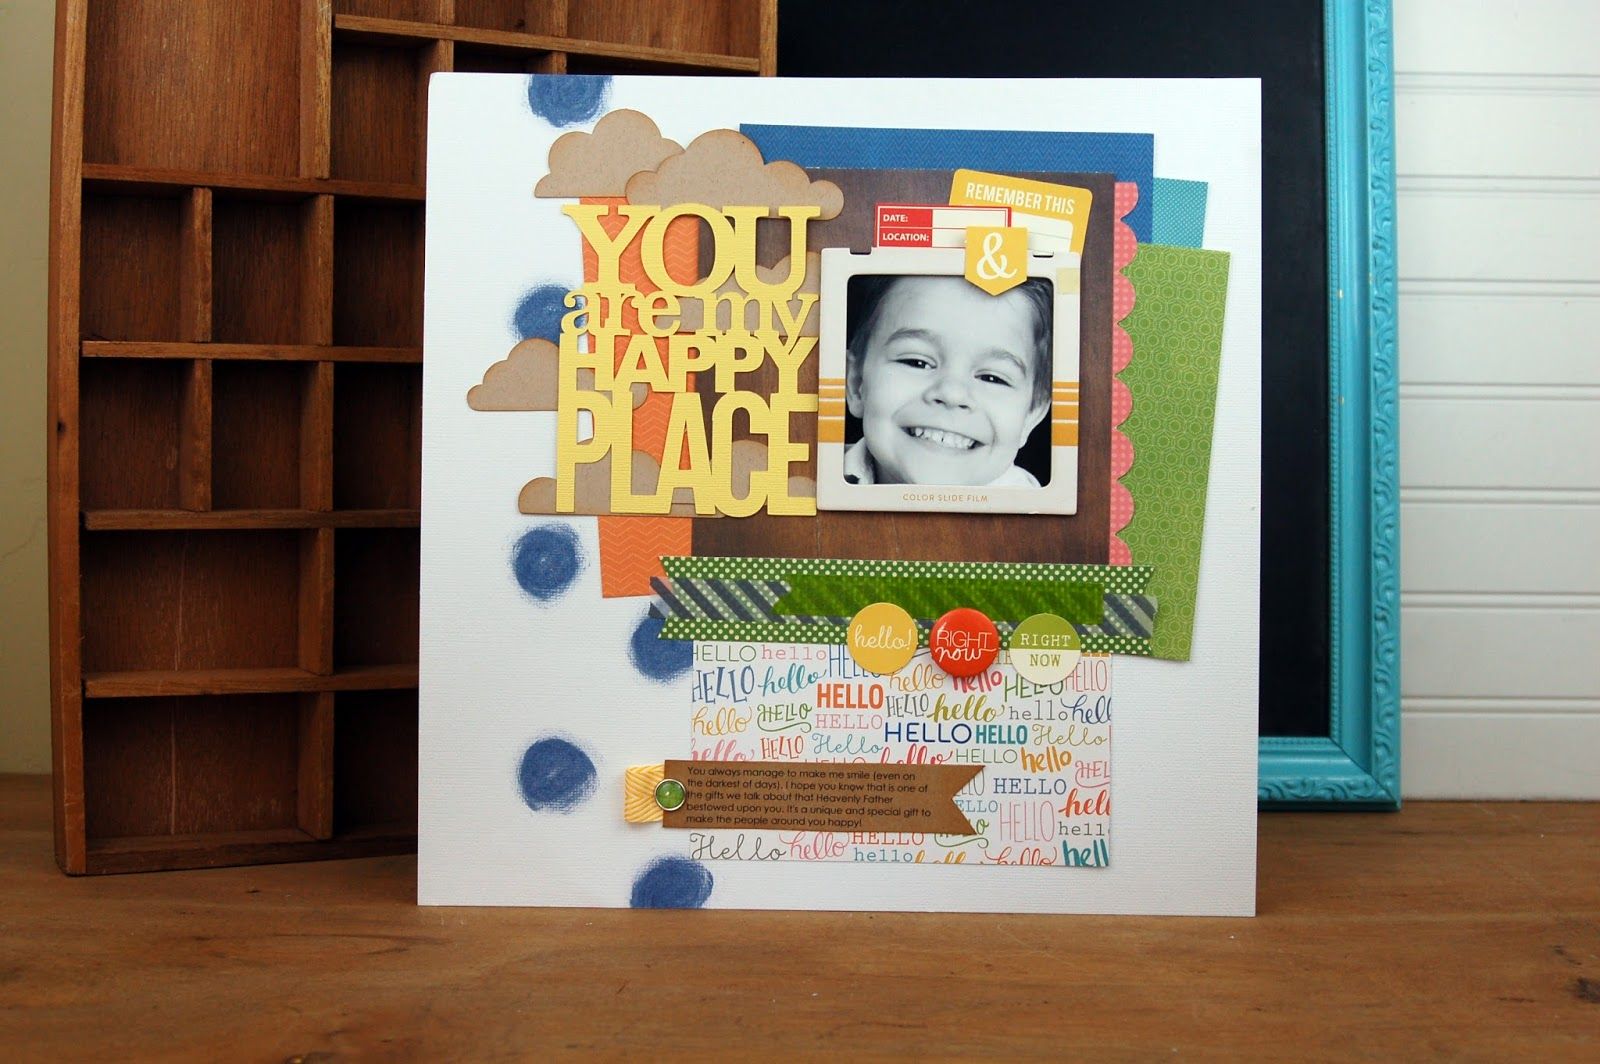 http://1.bp.blogspot.com/-Bw043znz2K0/VOuFLr_Y52I/AAAAAAAAUAk/XyMIRAdwRTA/s1600/You-Are-My-Happy-Place-Layout-by-Jen-Gallacher.jpg